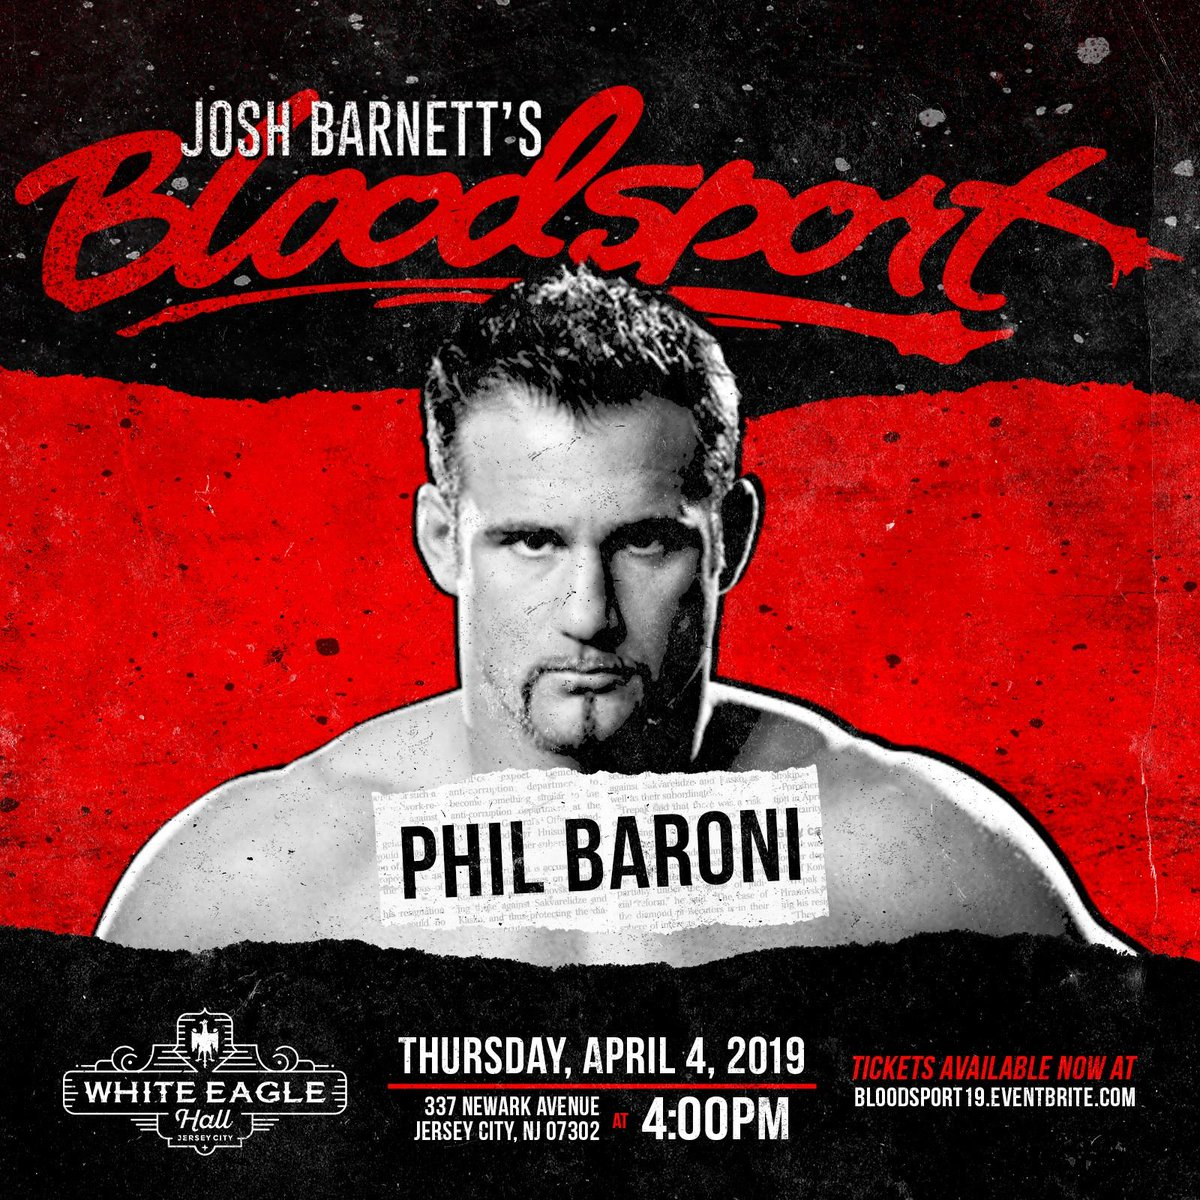 Guess who&#39;s coming to Josh Barnett&#39;s: Bloodsport?  Only the &quot;Best Evah&quot;.  The &quot;NY Bad Ass&quot; @philbaroni is bringing thunder &amp; lightning to our ring April 4th.  #JBBloodsport  @GCWrestling_  #Wrestlemania week <br>http://pic.twitter.com/8DMh0UmGcS